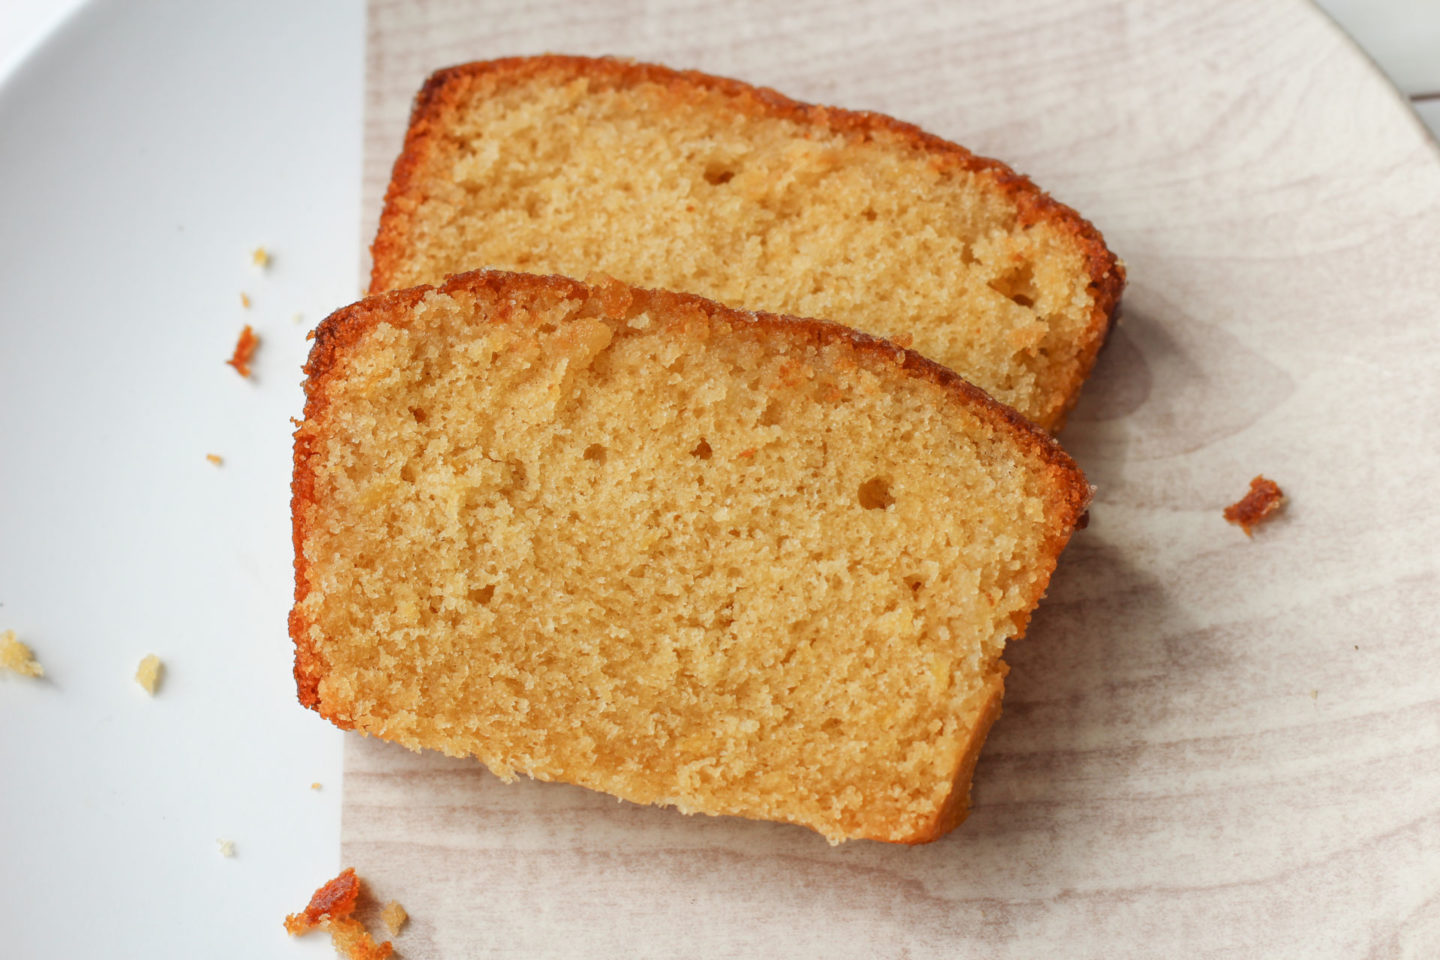 slices of lemon drizzle loaf cake from above